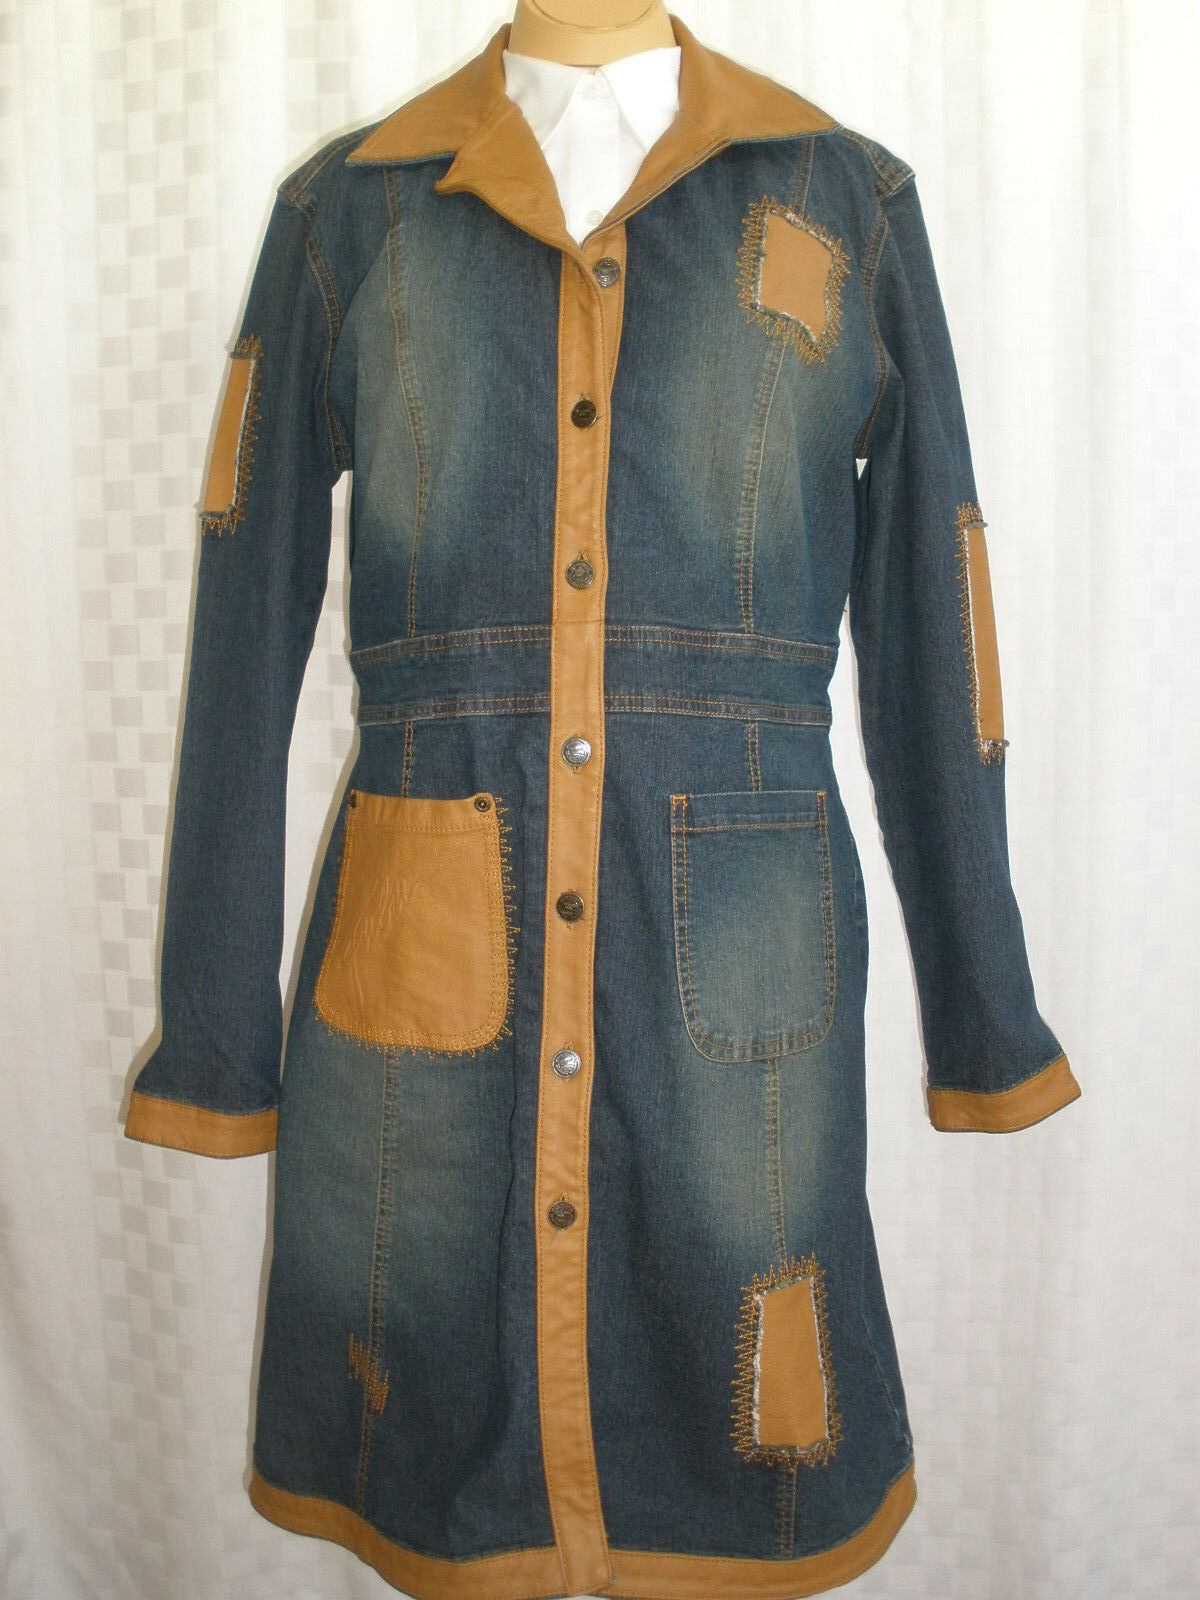 FUBU THE COLLECTION DENIM COAT LEATHER TRIM WOMEN'S SIZE M HOT VINTAGE L@@K